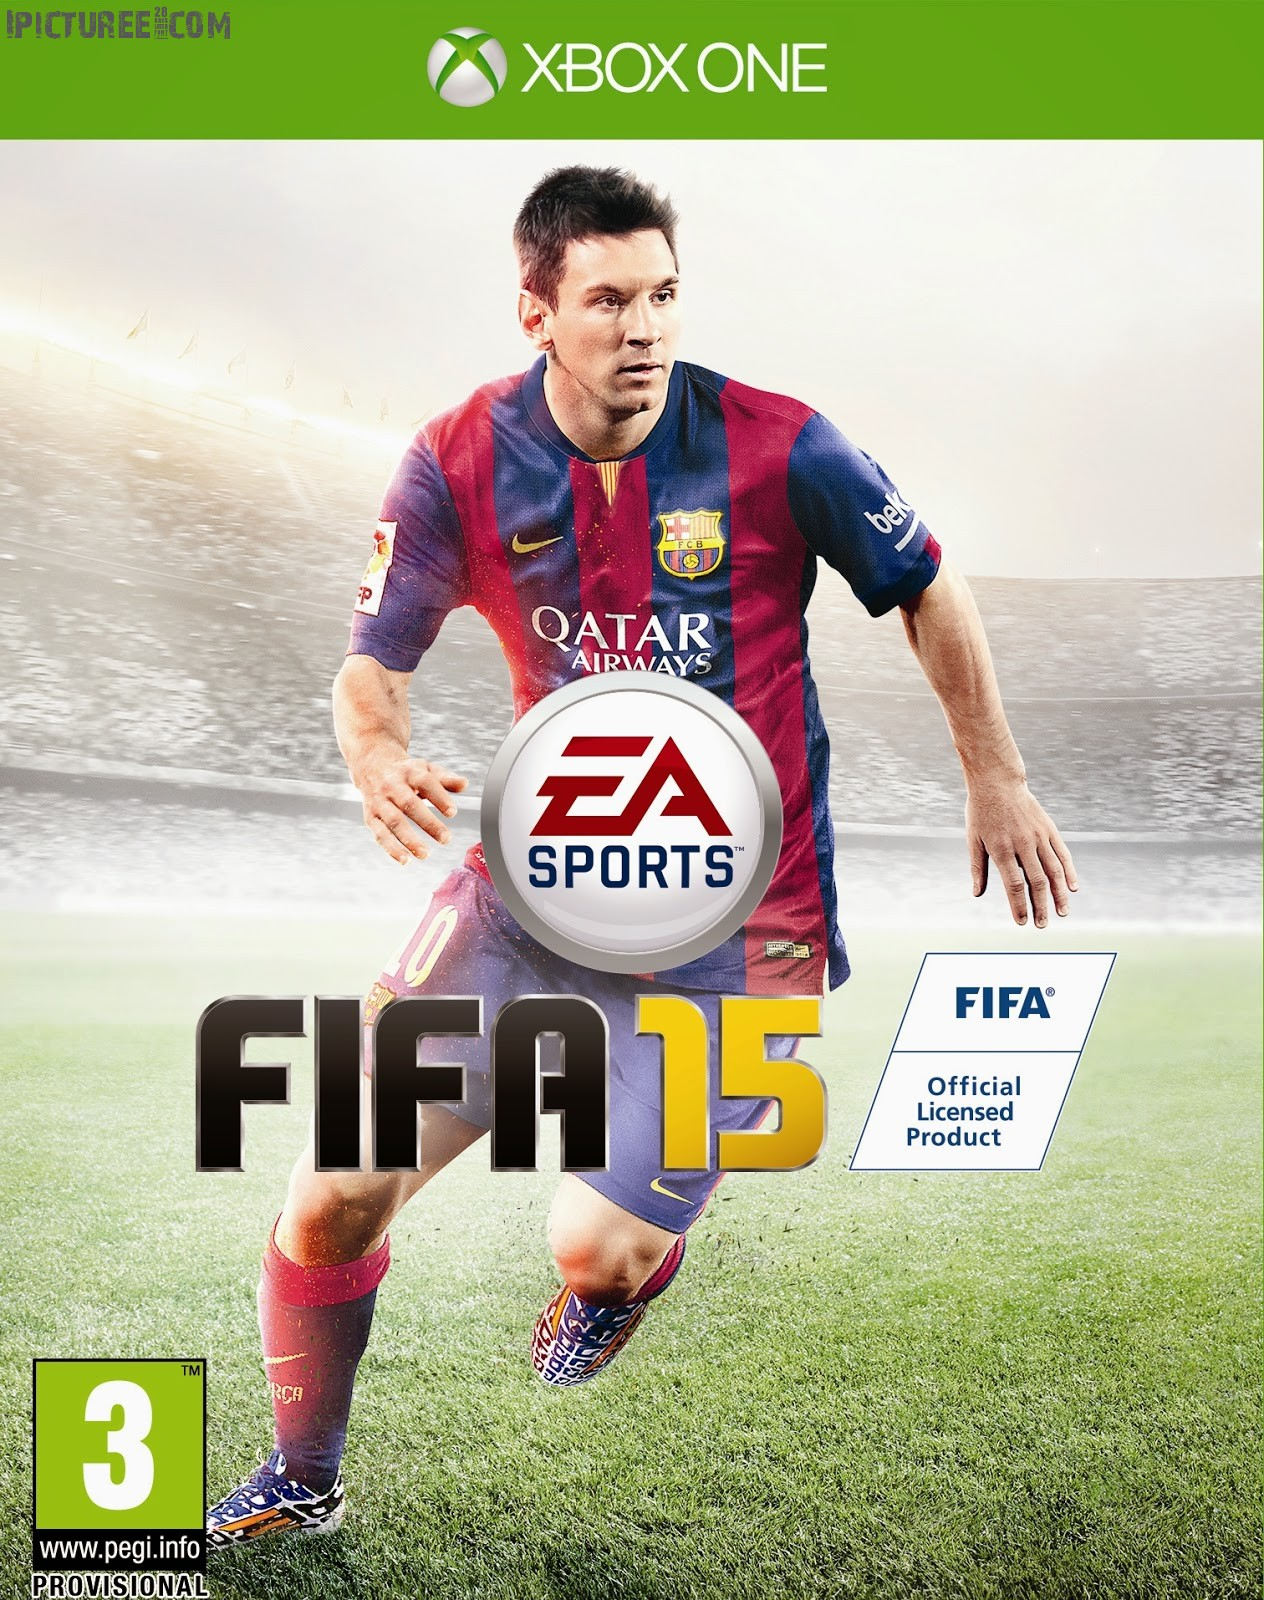 Fifa 2015 Leon Messi Xbox One Cover